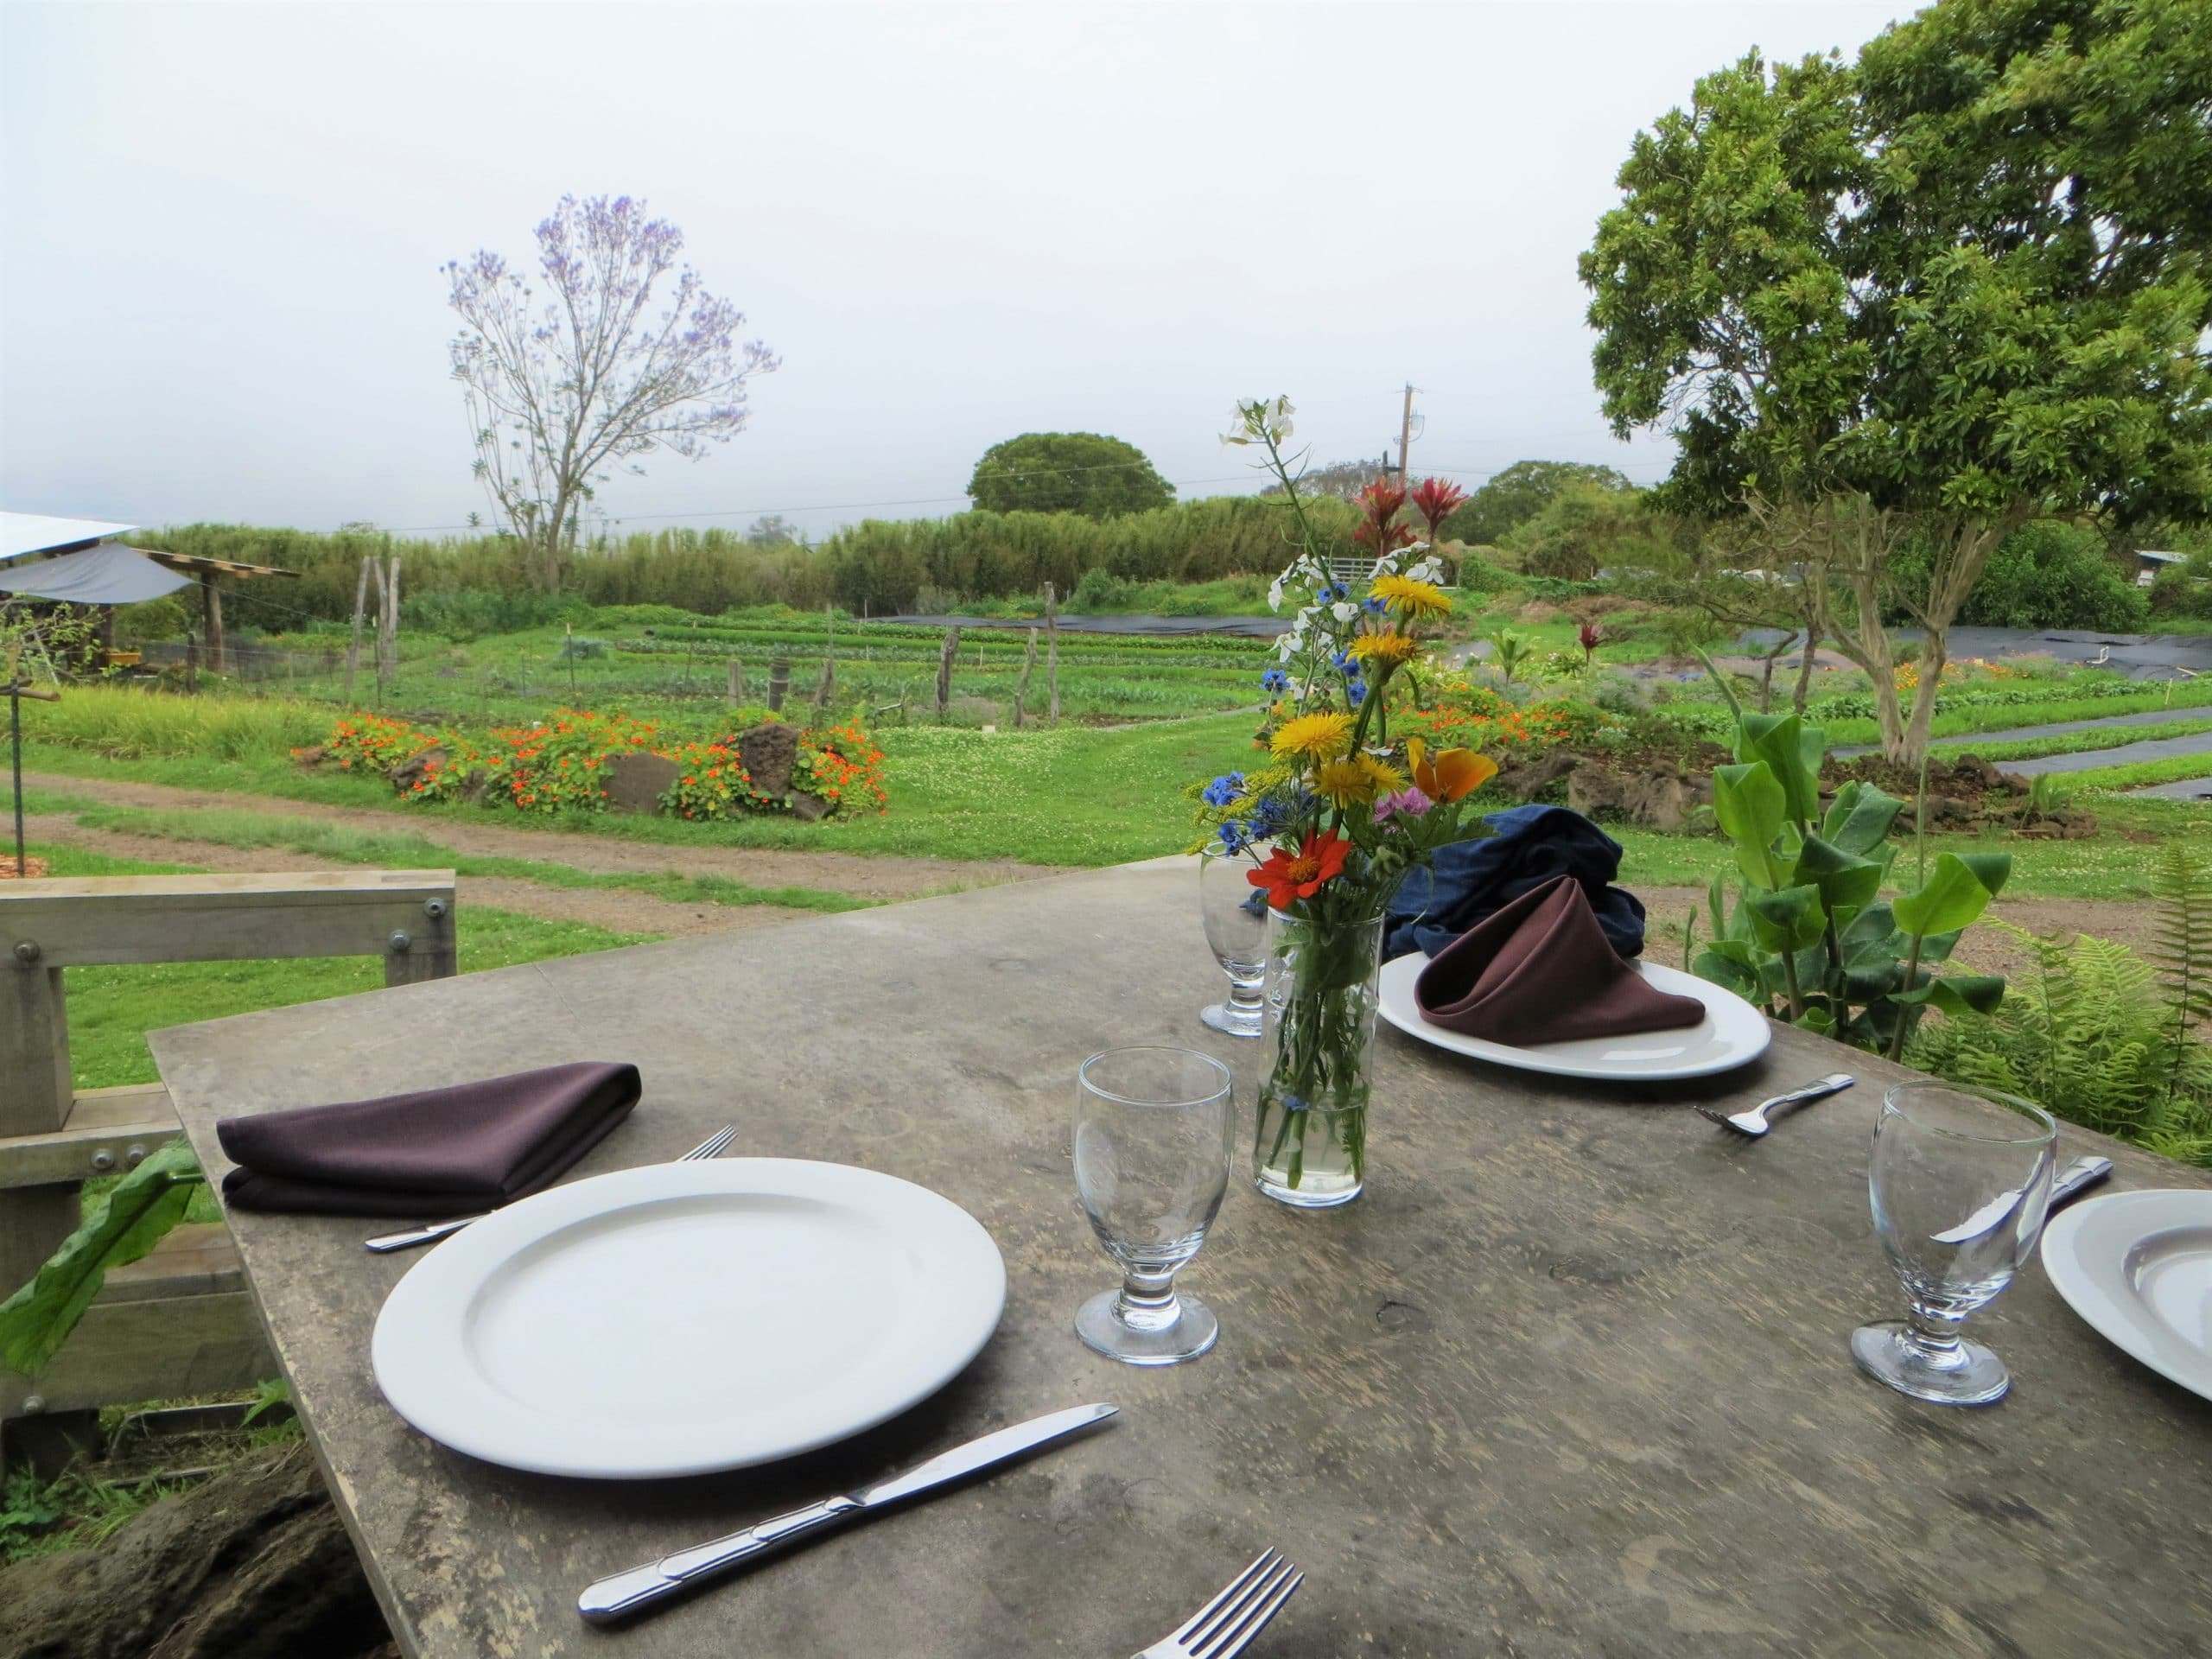 outdoor table at O'o farms overlooking the farm